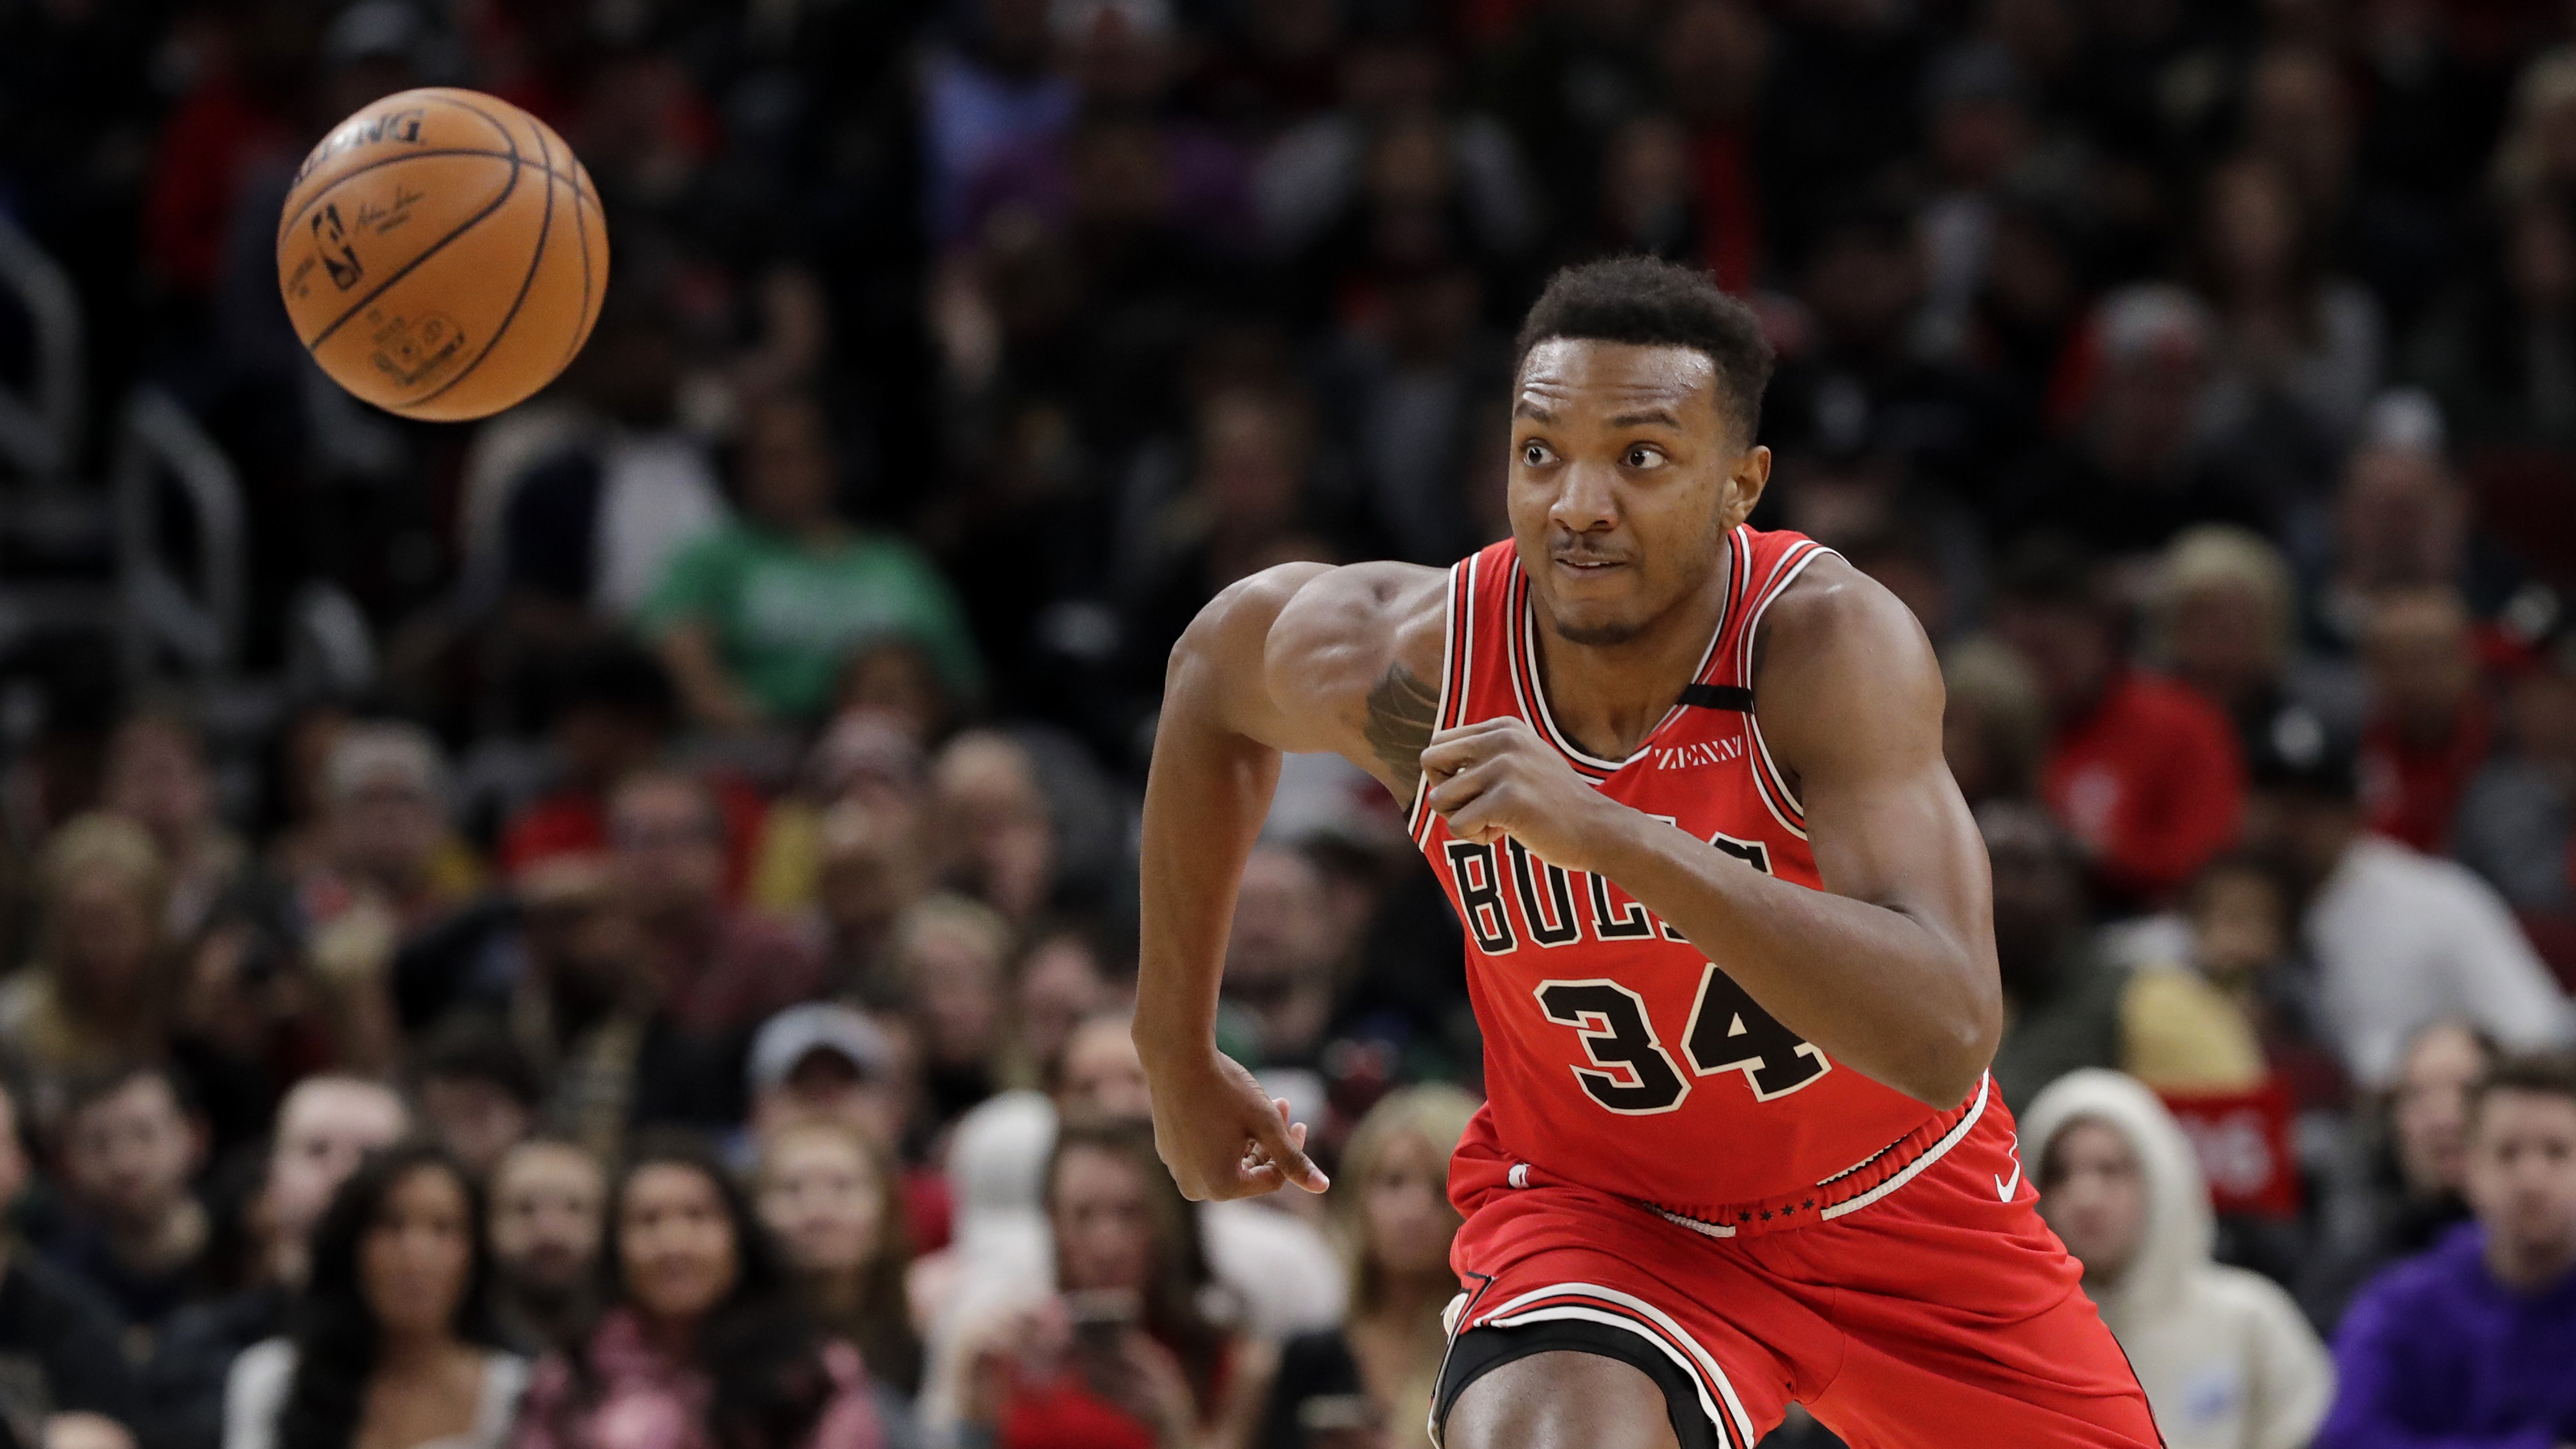 Wendell Carter Jr. says he's feeling comfortable with new Bulls coach Billy Donovan.